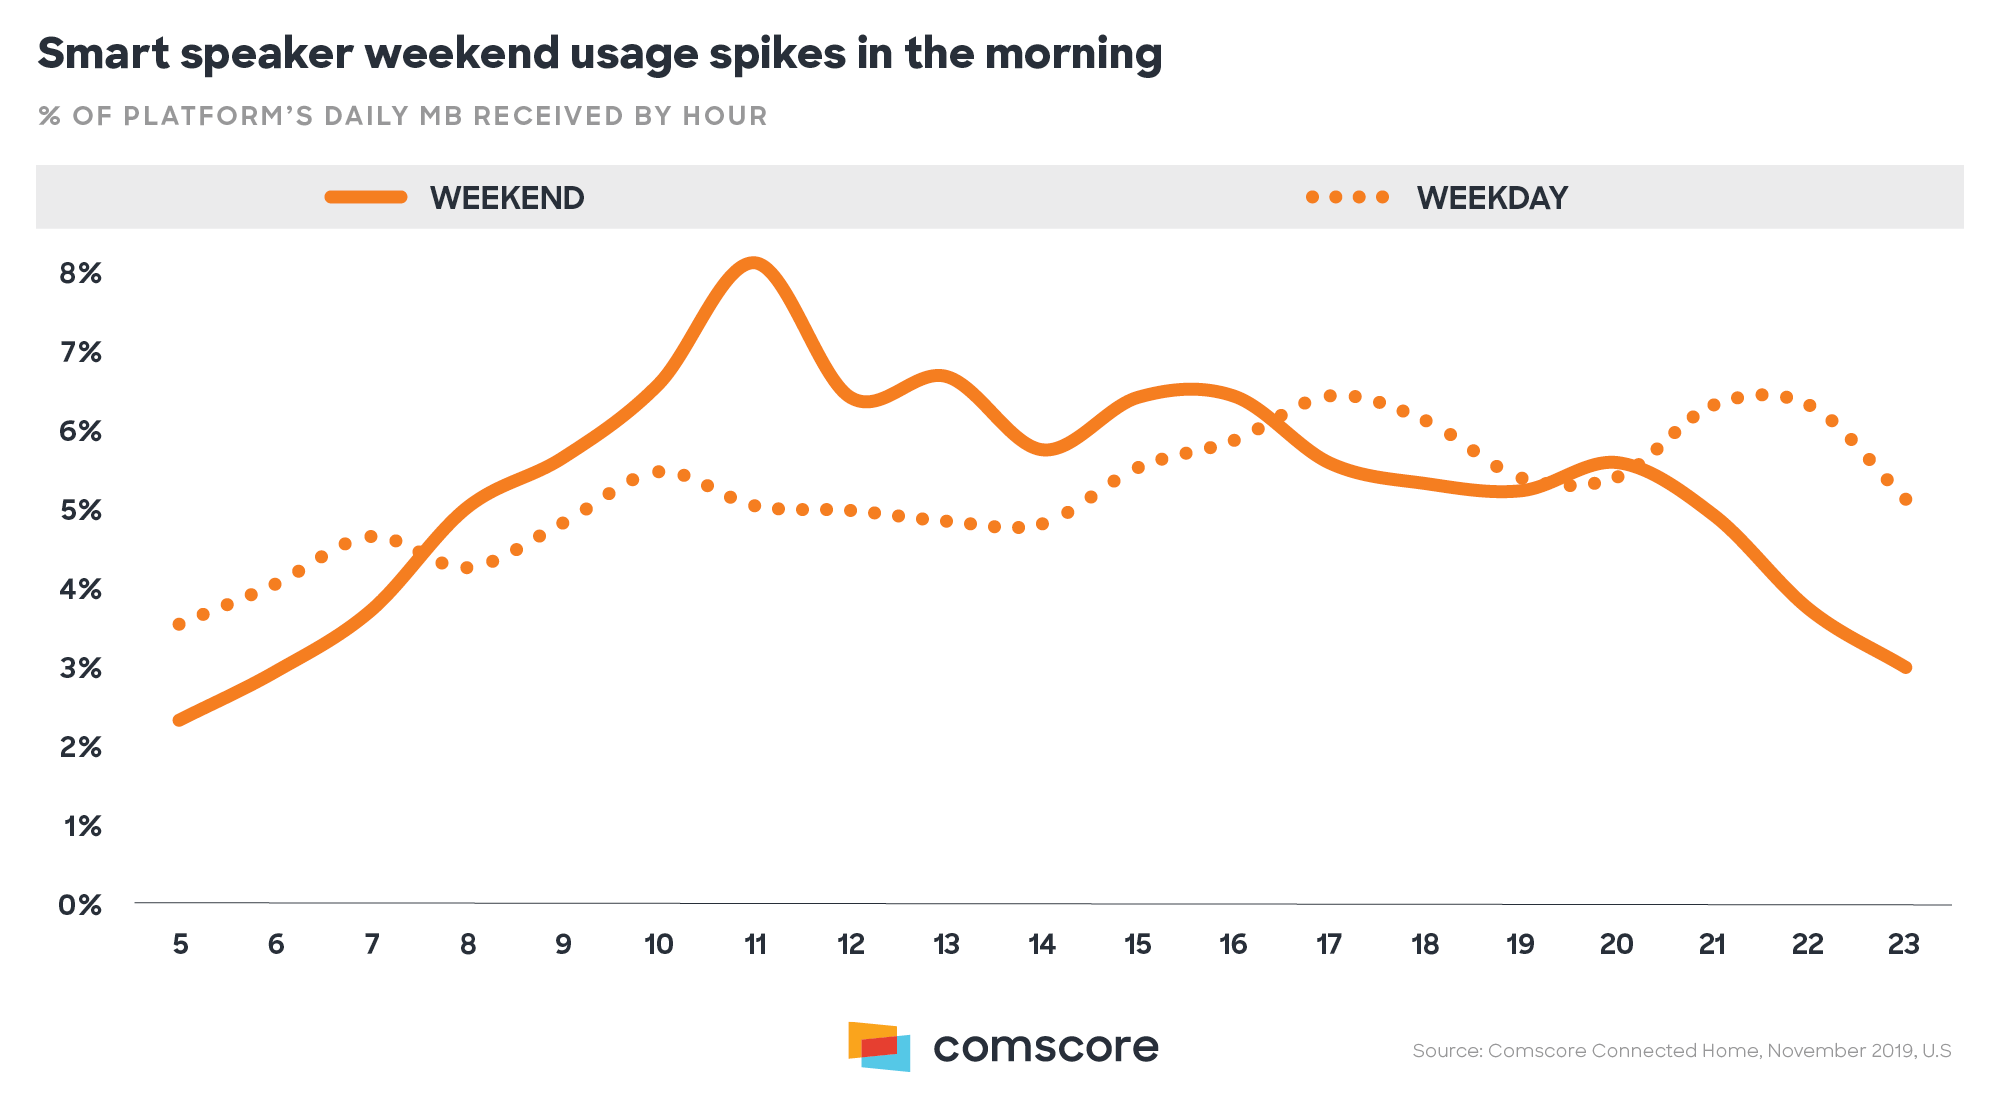 Smart Speaker Weekend Usage Spikes in the Morning